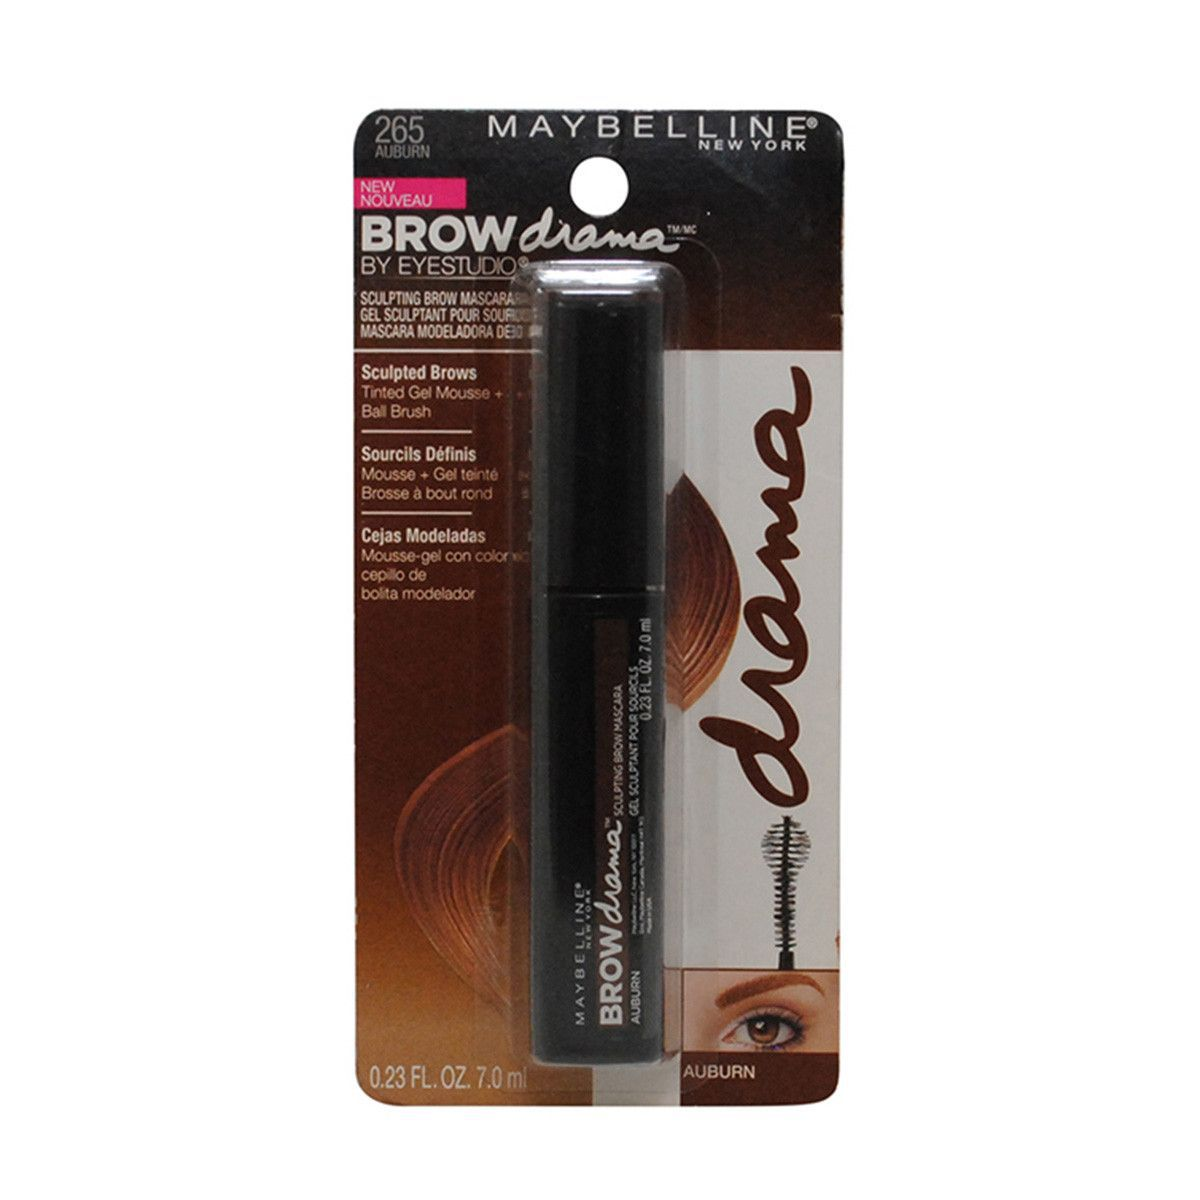 WHOLESALE MAYBELLINE BROW PRECISE FIBER VOLUMIZER EYEBROW MASCARA - AUBURN 265 - 72 PIECE LOT